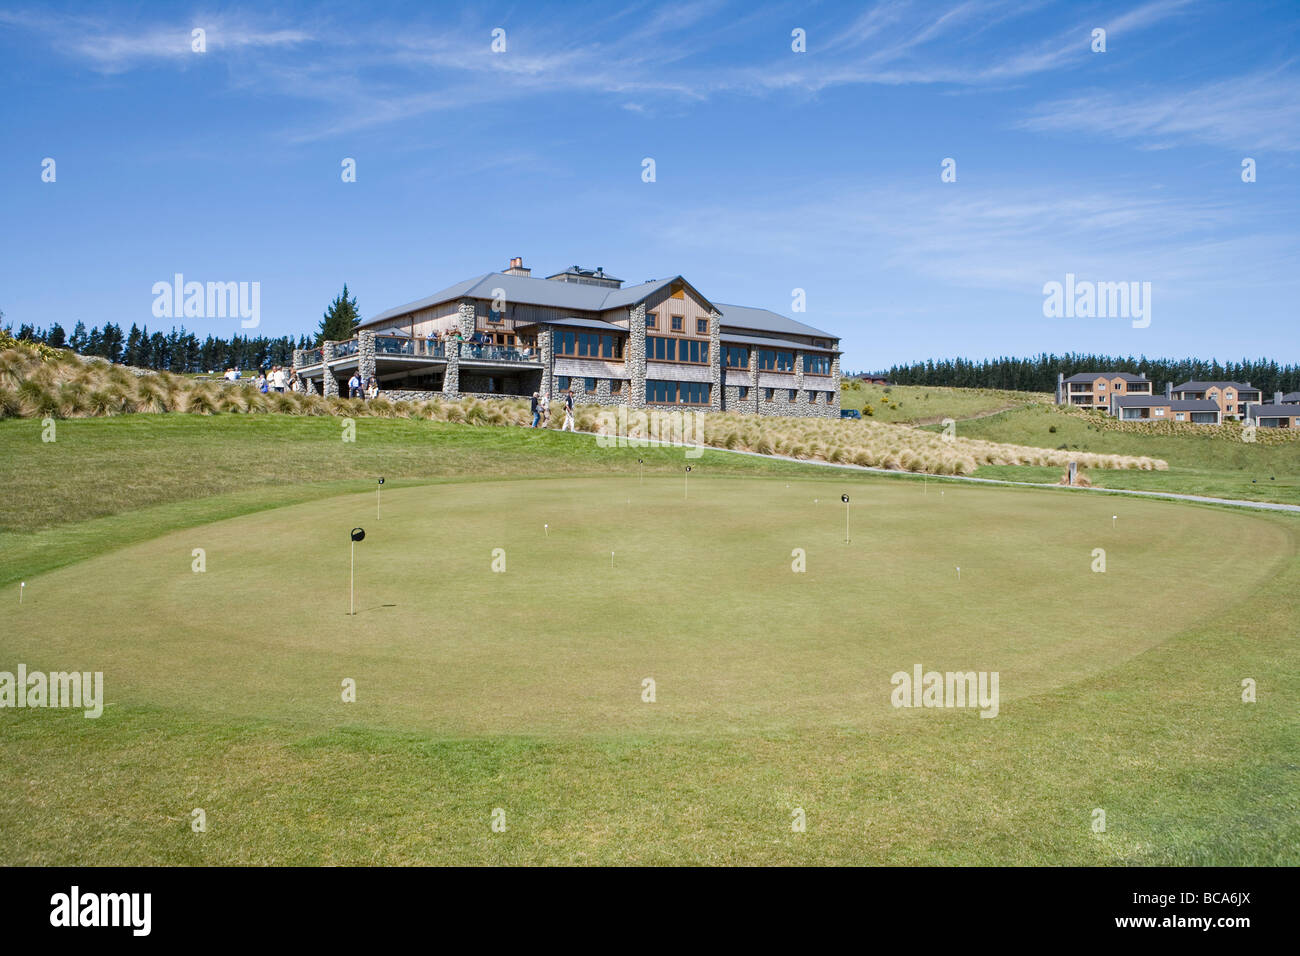 Putting Green at Terrace Downs High Country Resort, Near Mt. Hutt, Canterbury, South Island, New Zealand - Stock Image